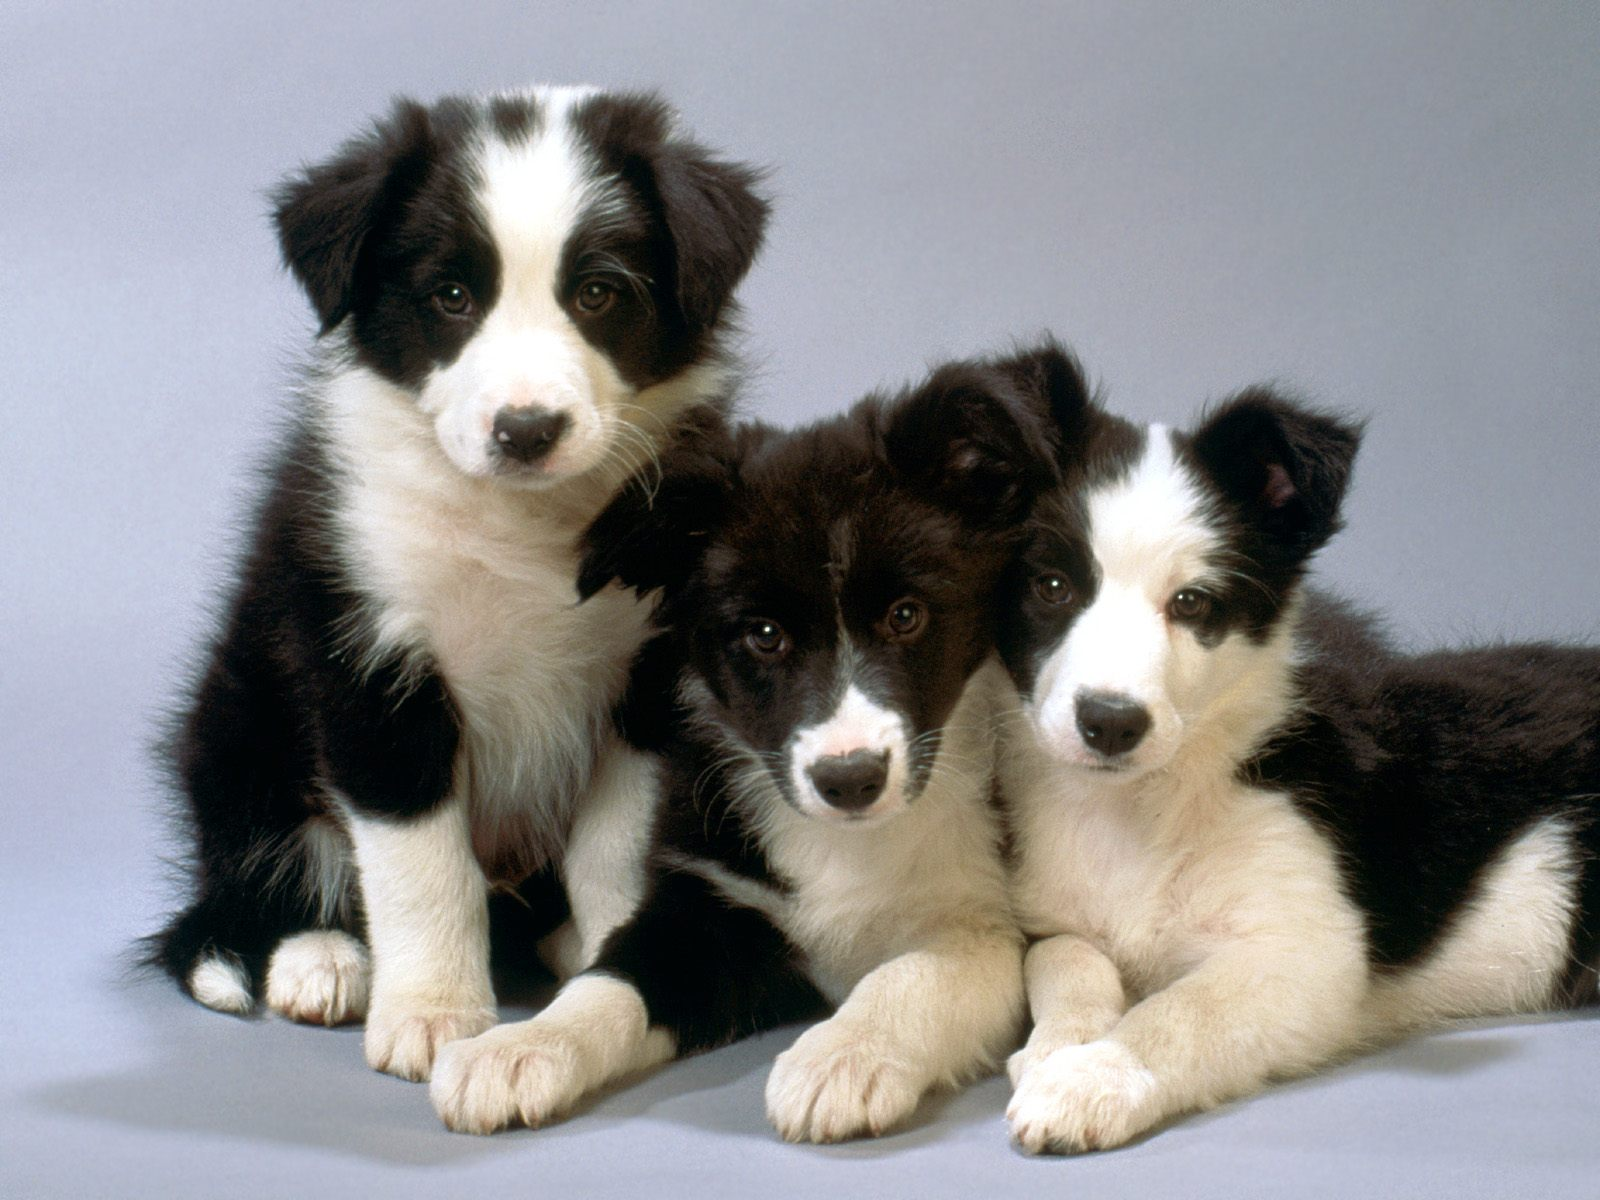 http://3.bp.blogspot.com/-OpqM3mtgUSU/TVlfMhG9f8I/AAAAAAAAAE8/_haRqDi6m64/s1600/Black+and+White+Border+Collie+Pups.jpg